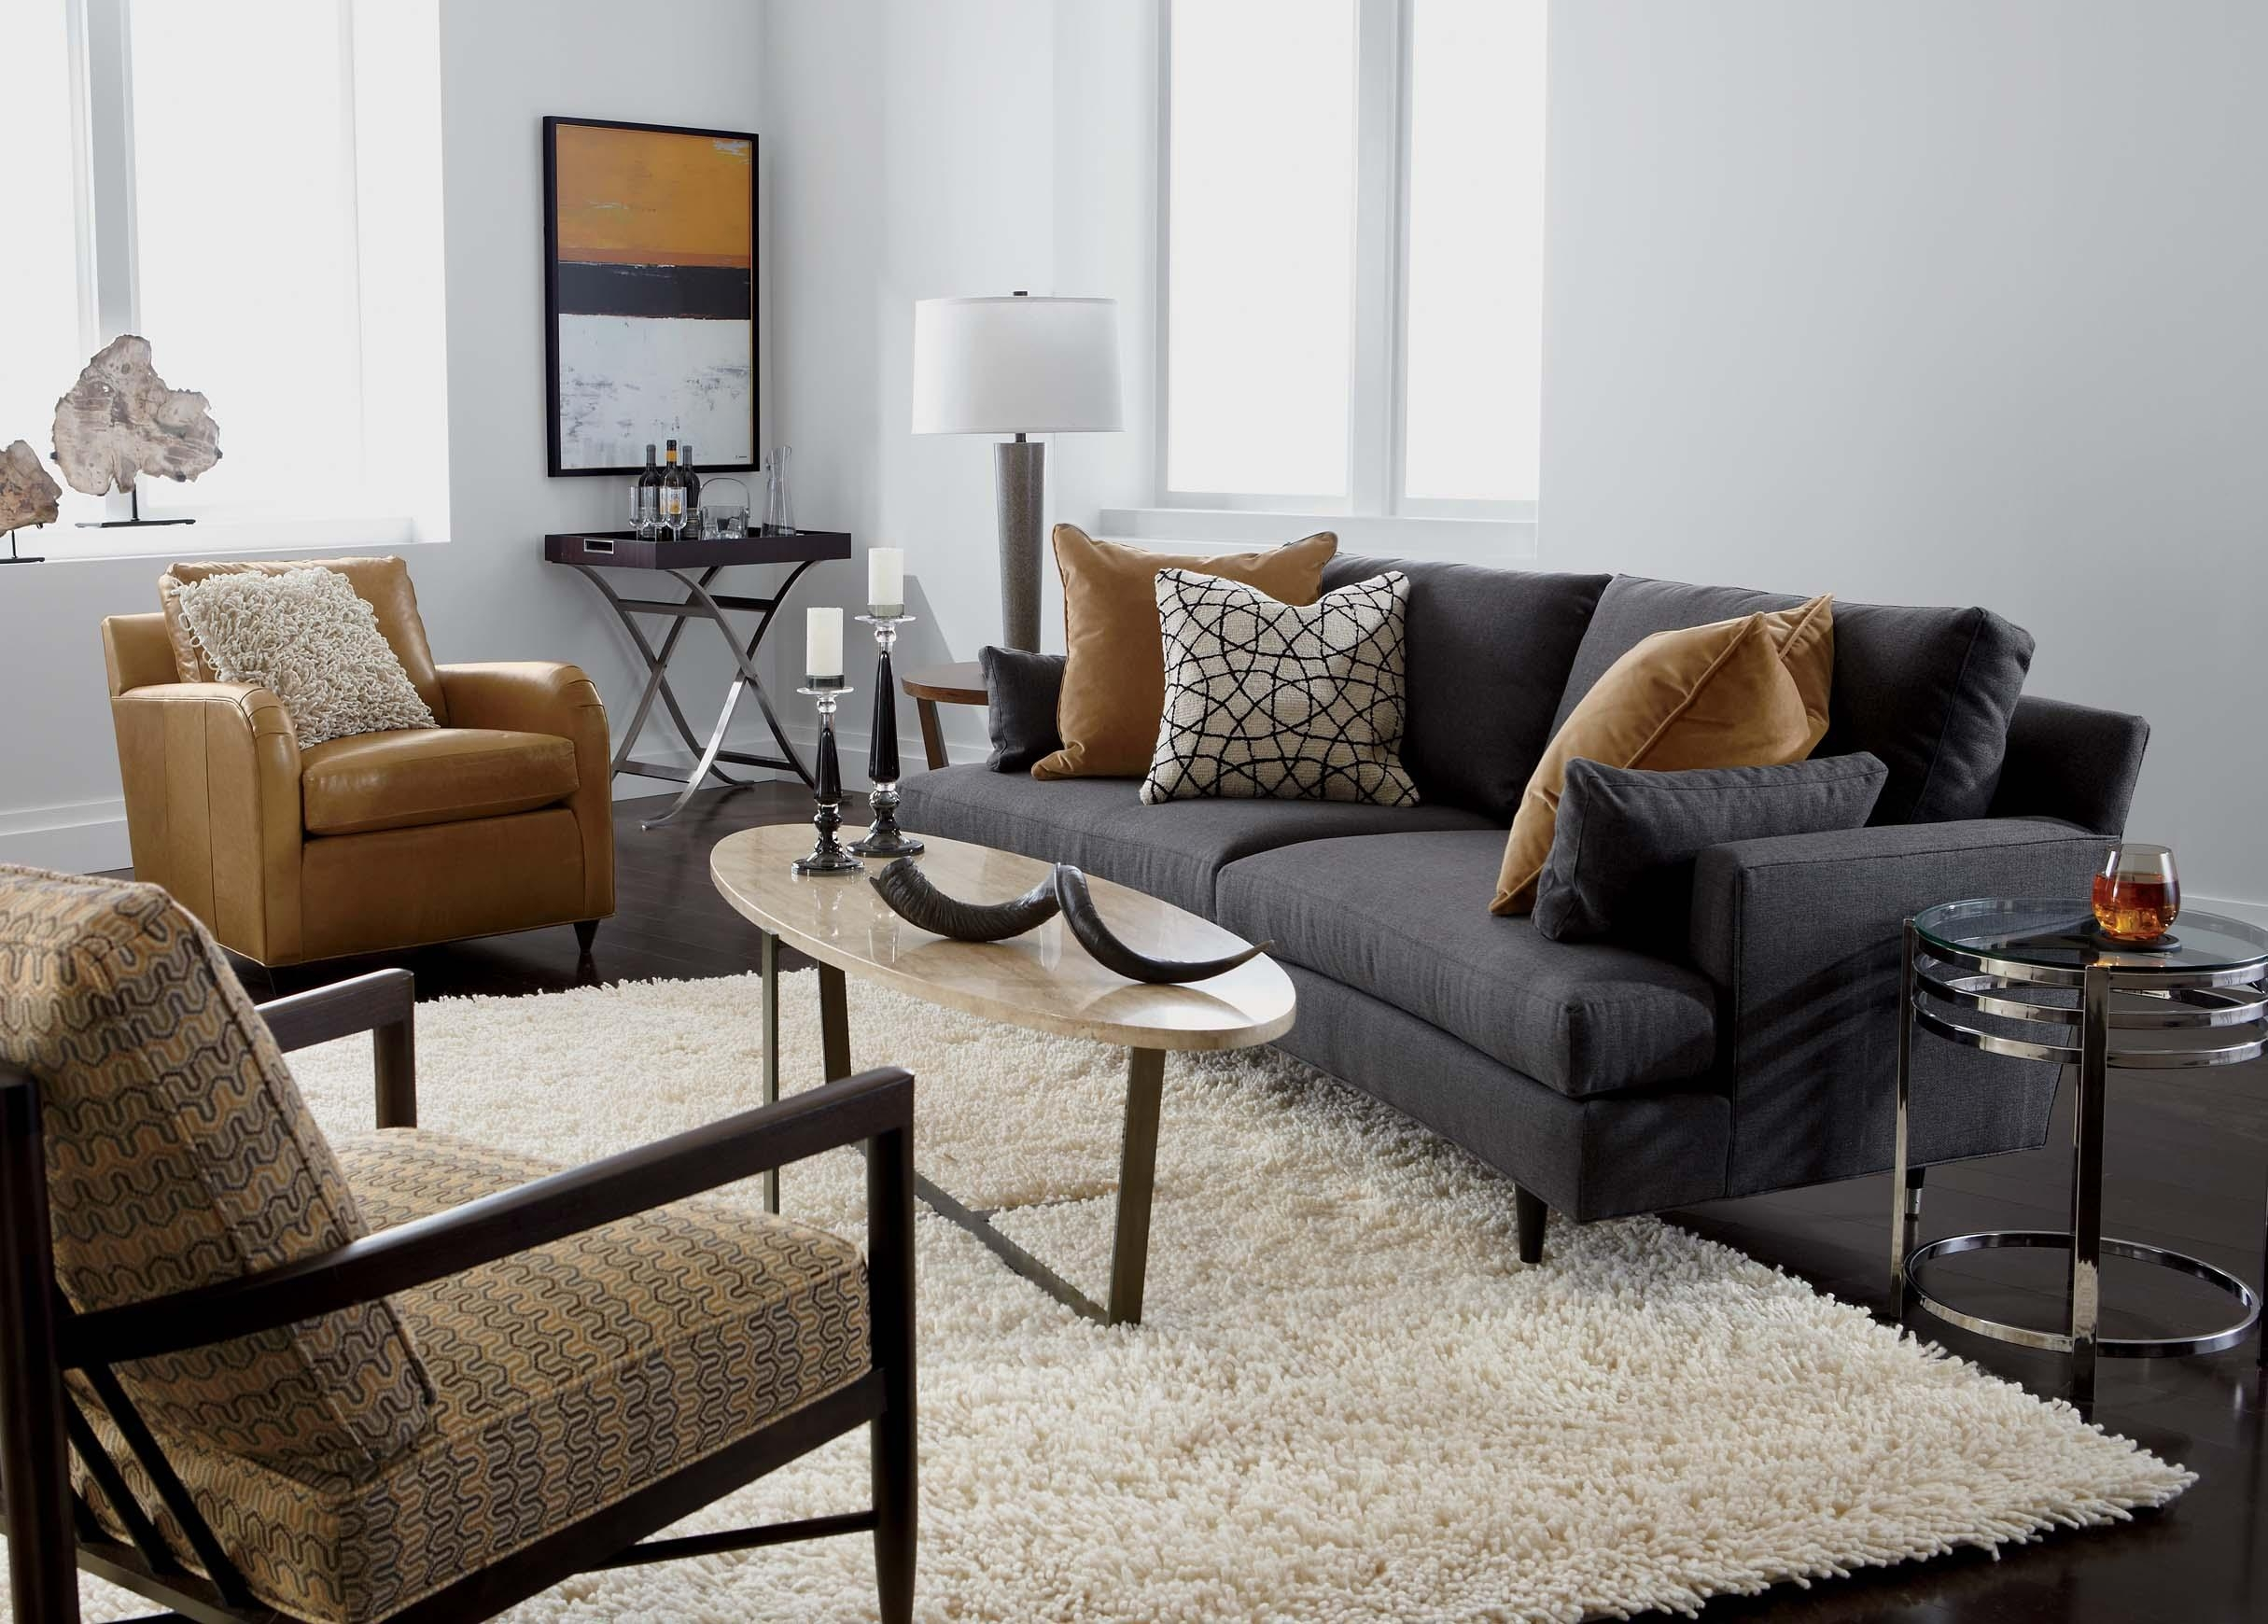 Apollo Living Room | Ethan Allen Regarding Ethan Allen Sofas And Chairs (Image 1 of 20)